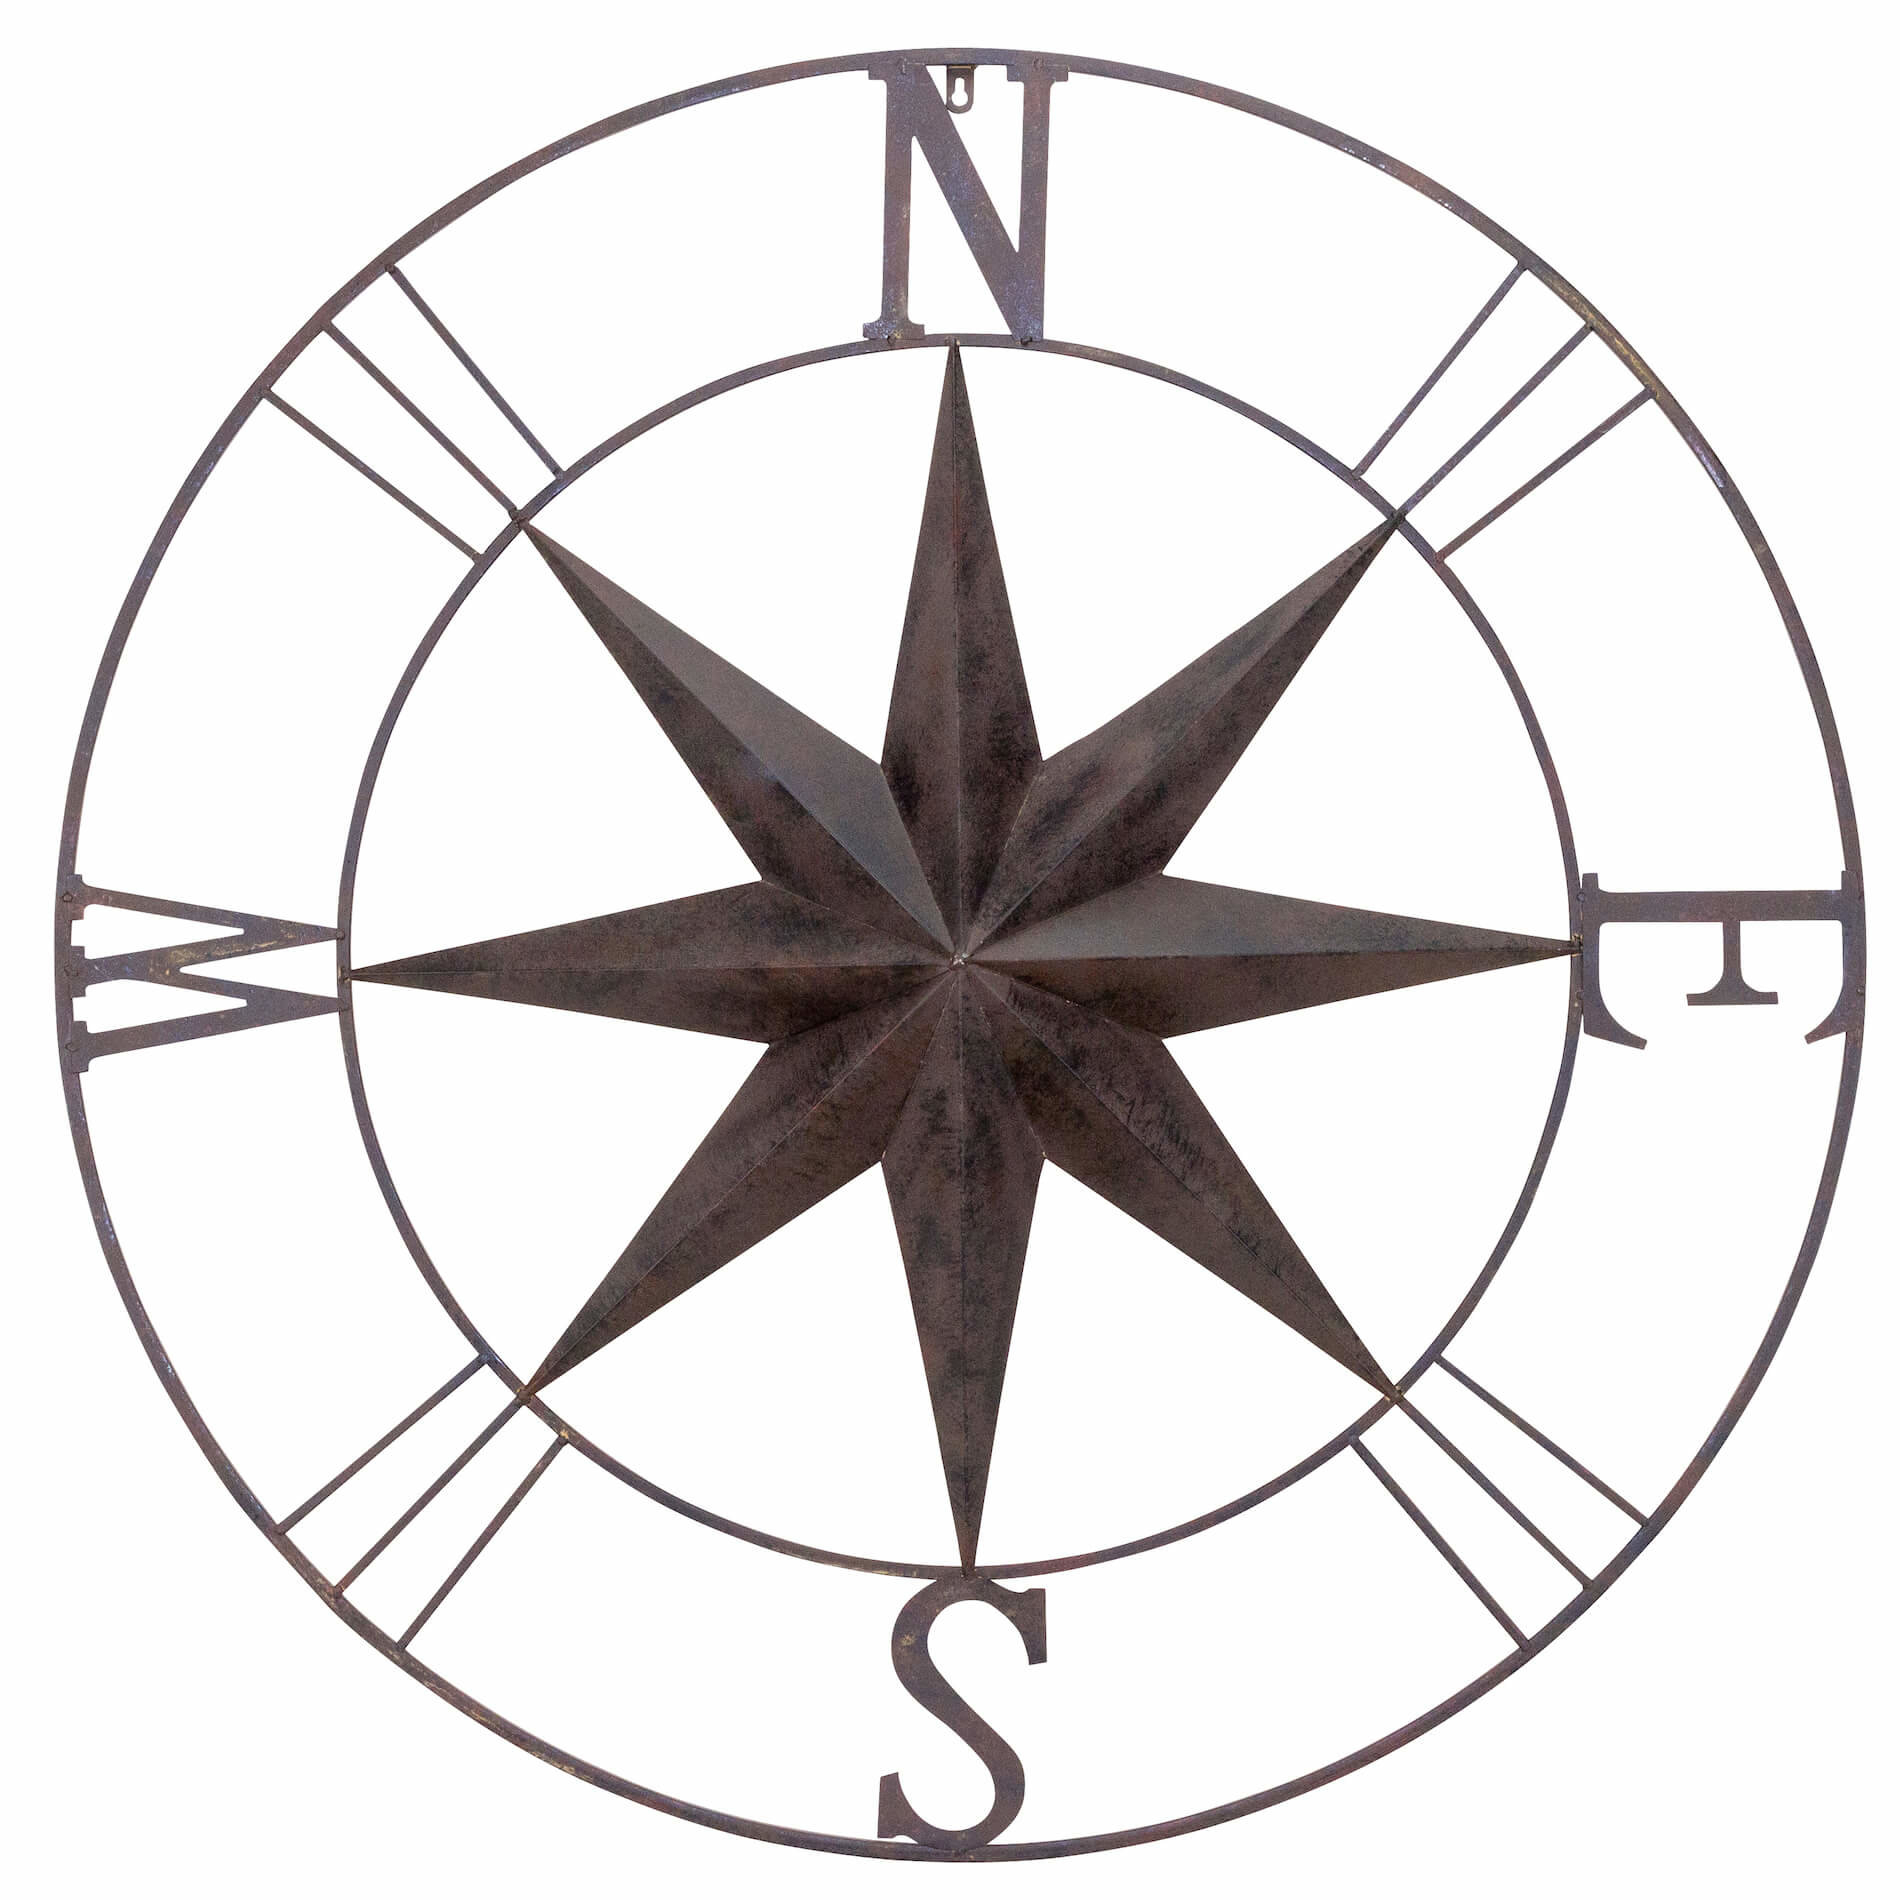 Antique Metal Compass Rose Wall Décor Within Rioux Birds On A Wire Wall Decor (View 23 of 30)